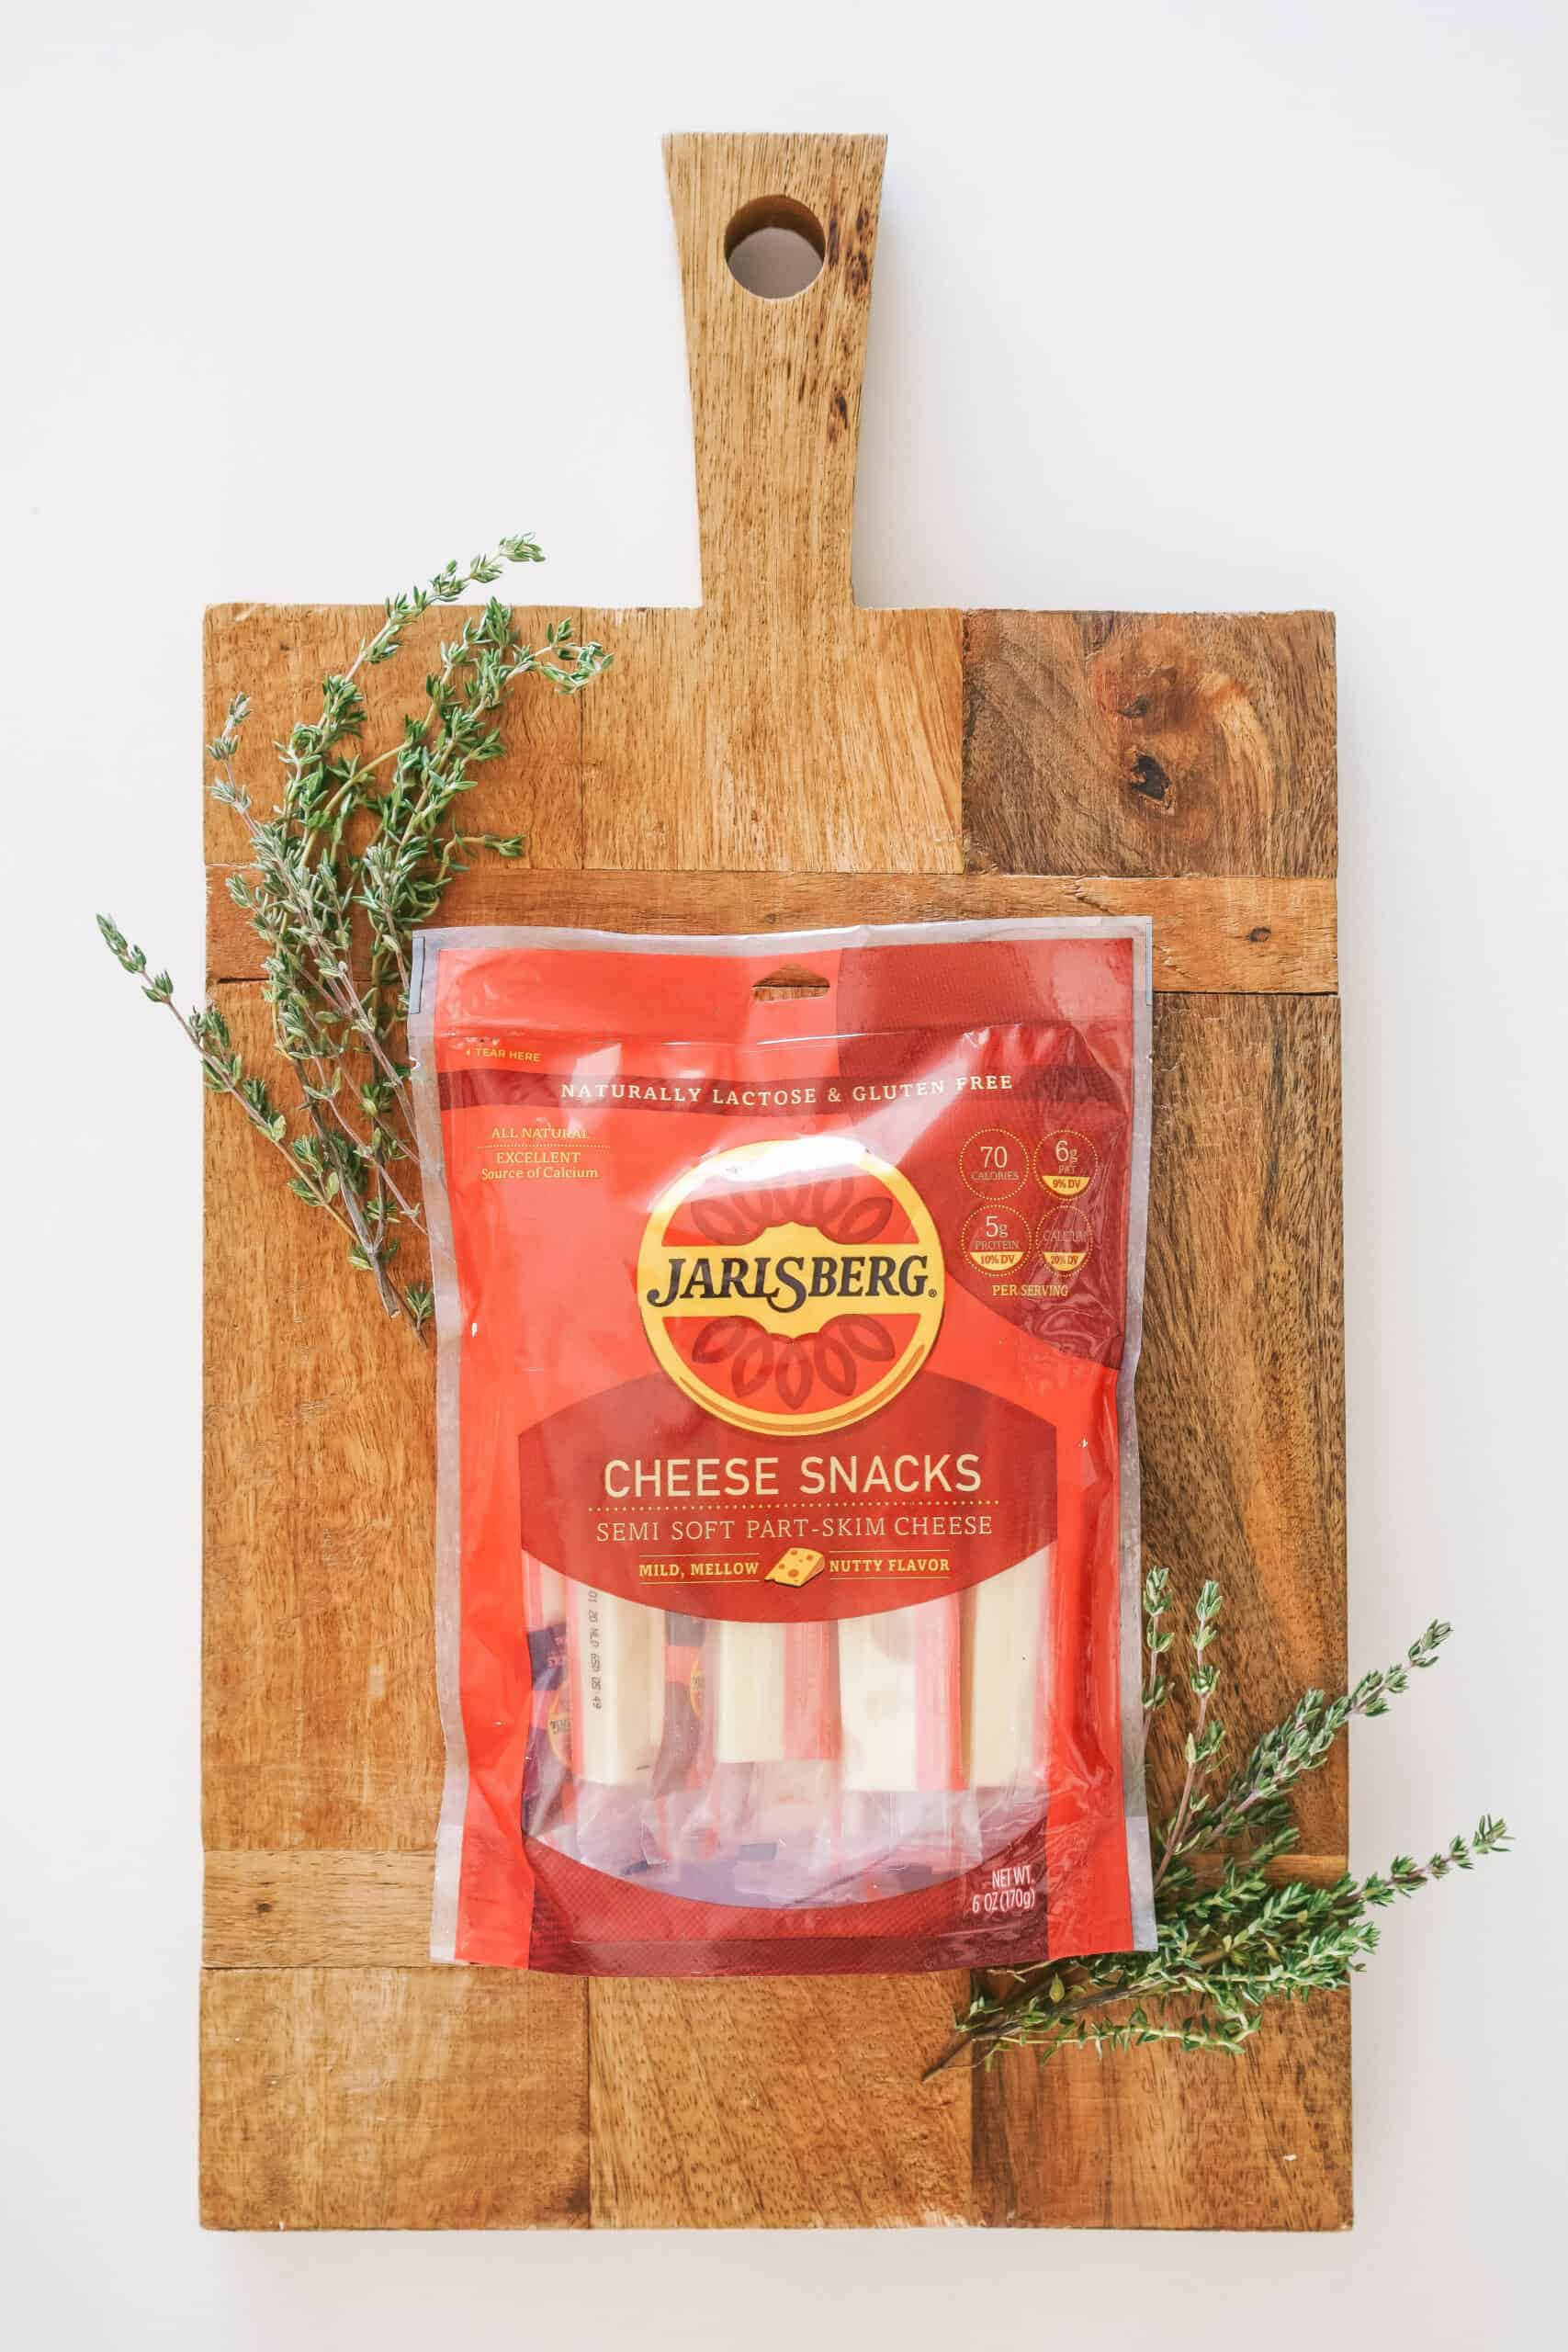 package of Jarlsberg Cheese snacks on a wooden cutting board